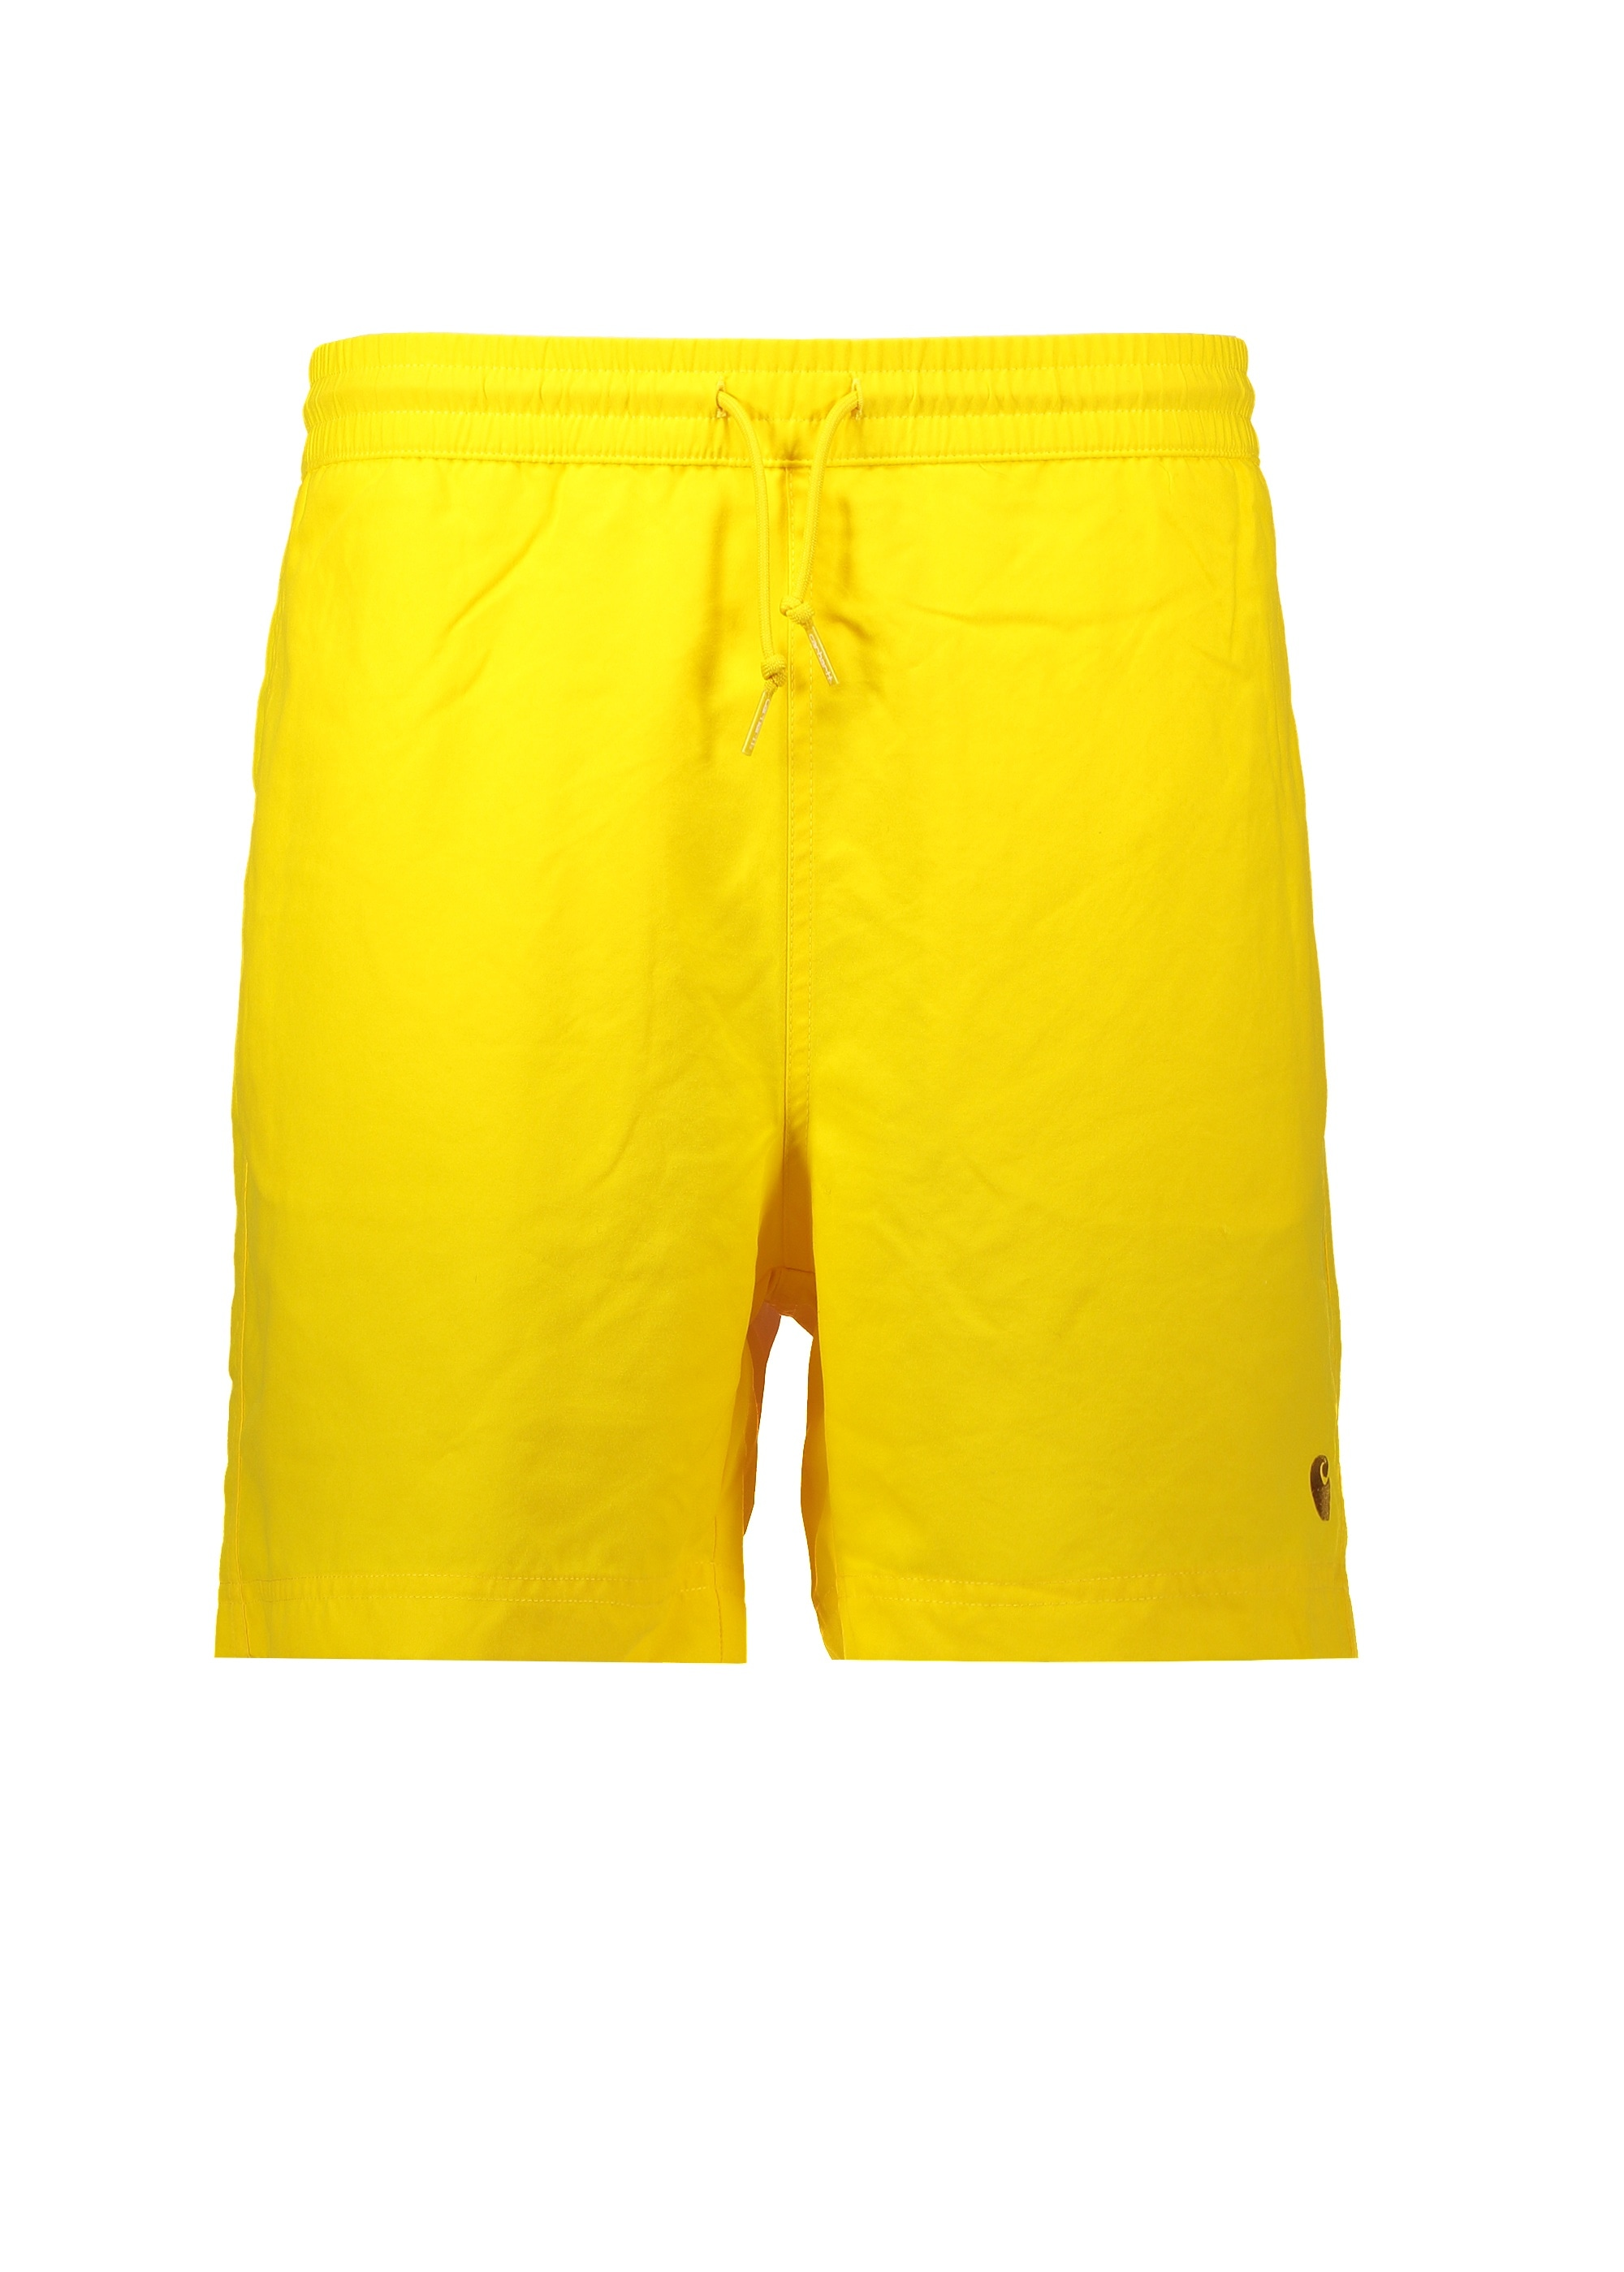 5b20dbb248 Carhartt Chase Swim Trunks - Primula / Gold - Shorts from Triads UK